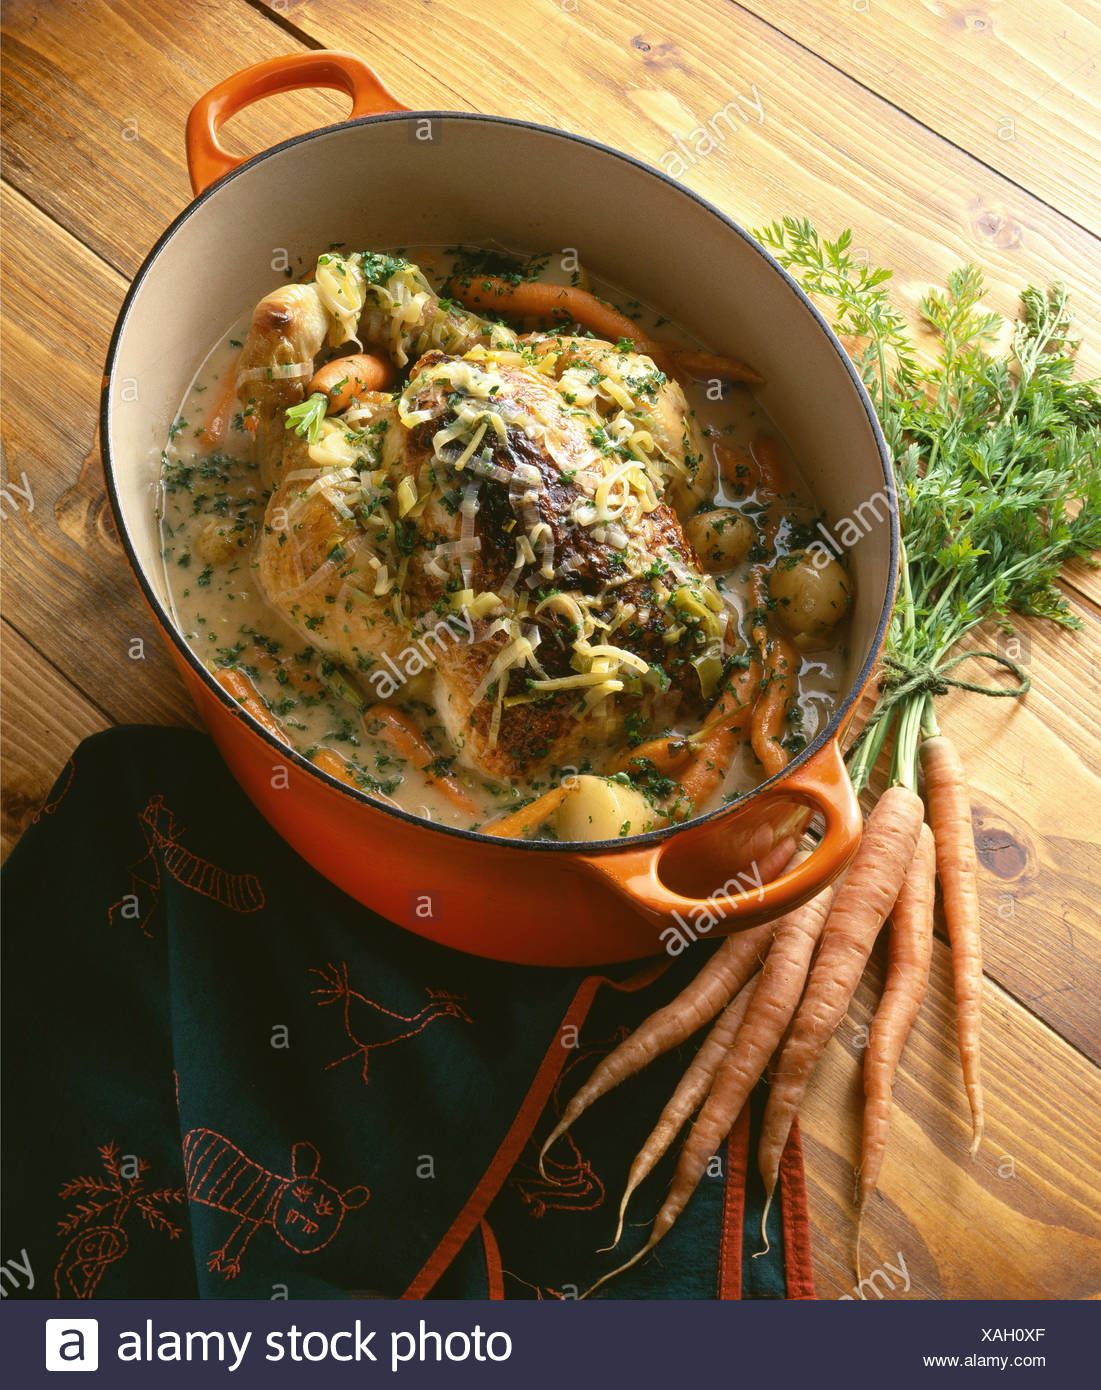 Farmhouse Chicken in a pot Fresh tangy, the heady aromas of herbs, cider, and springtime vegetables, this chicken casserole - Stock Image